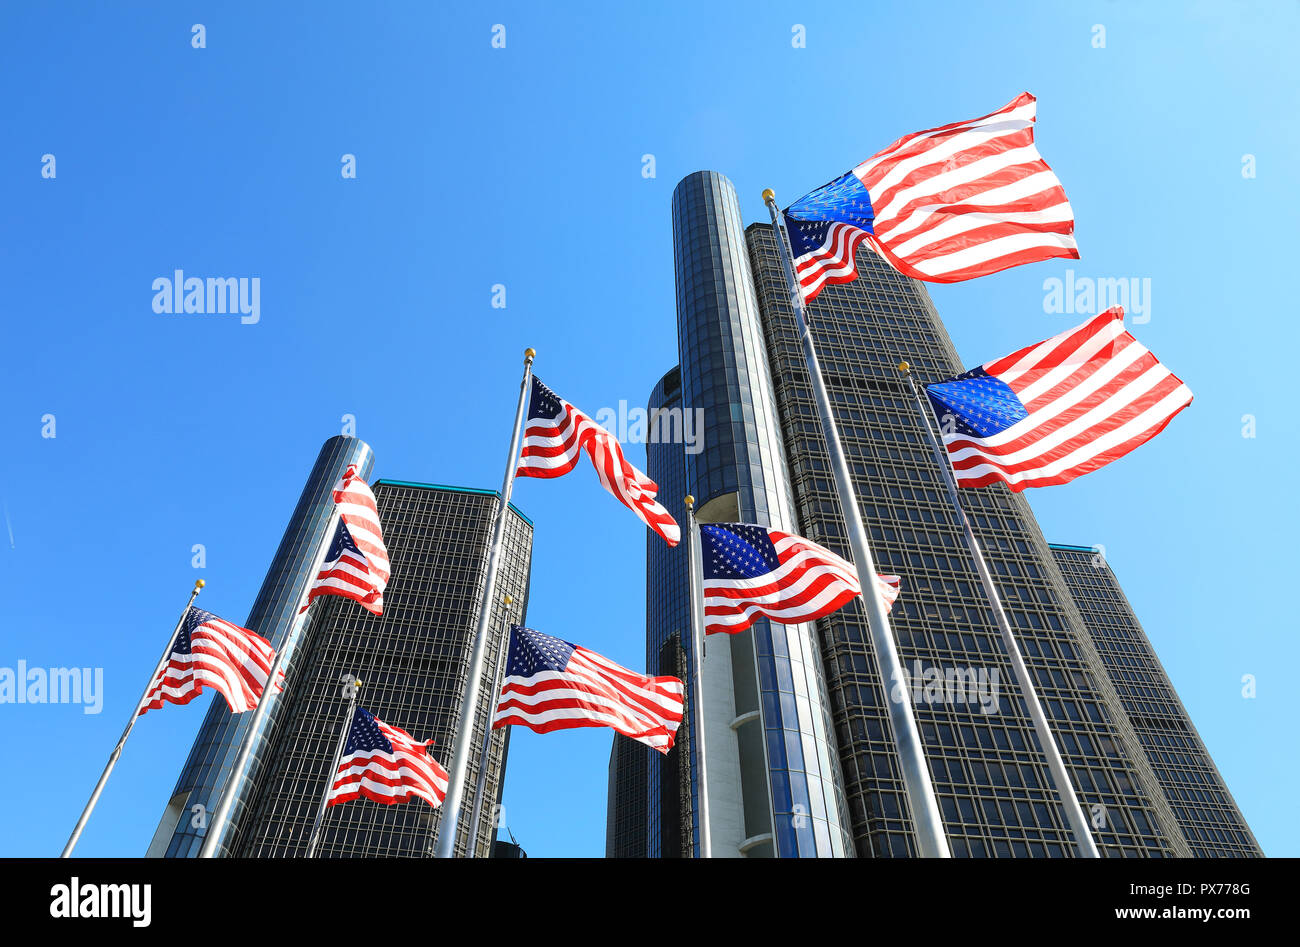 The skyscrapers of the Renaissance Centre, on Detroit's Riverfront, owned by General Motors as it's world HQ, in Michigan, USA - Stock Image